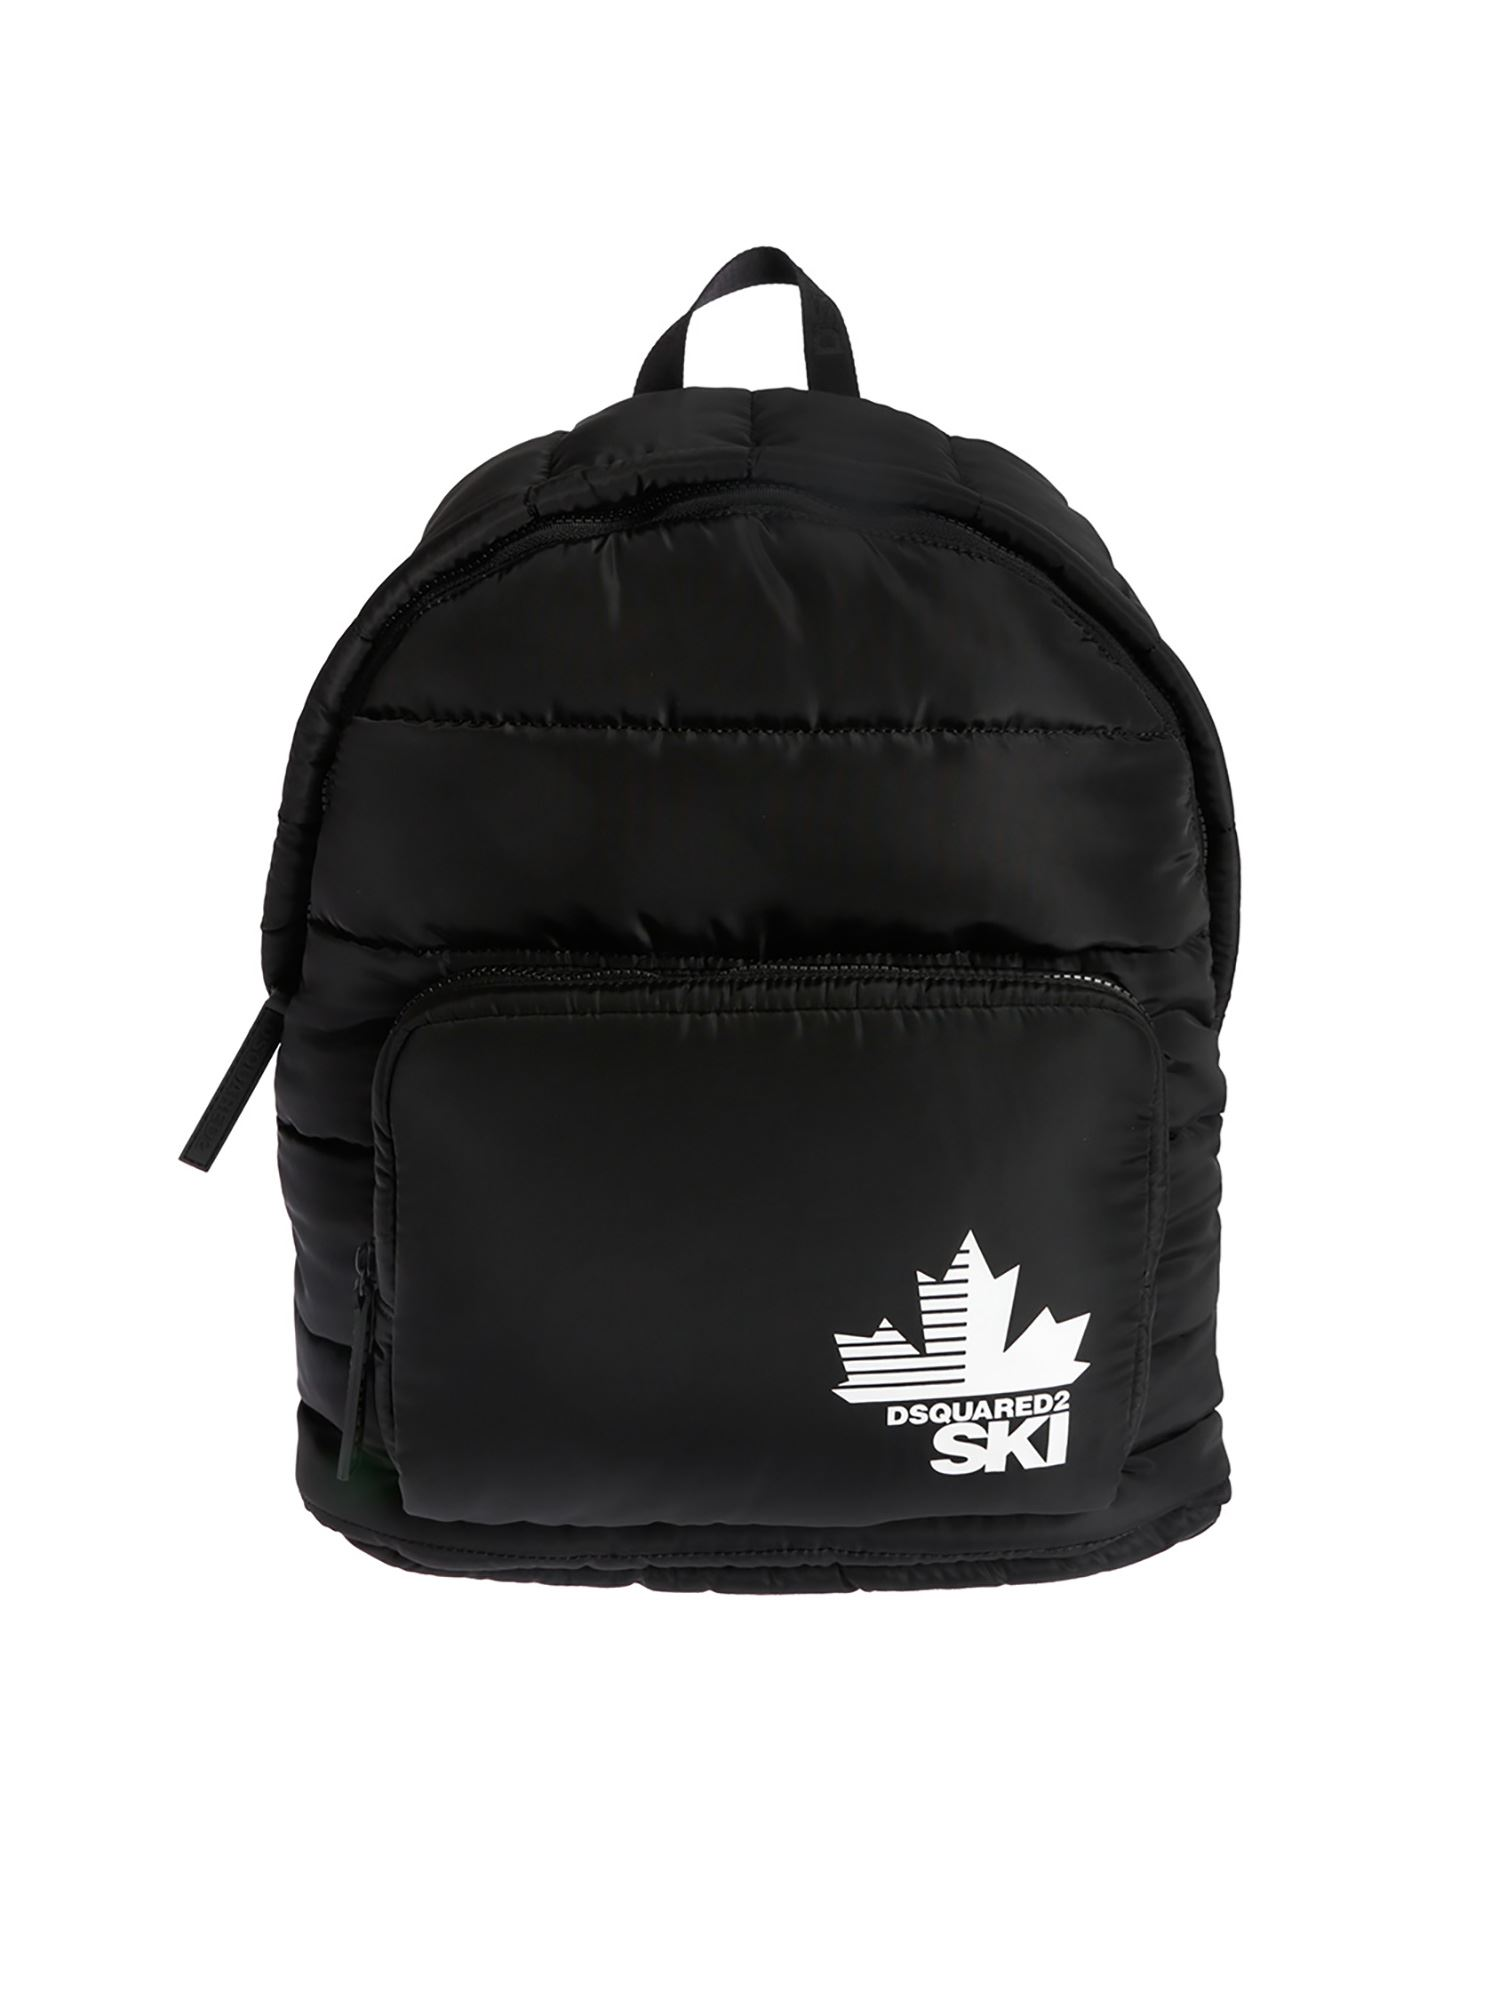 Dsquared2 PADDED BACKPACK IN BLACK